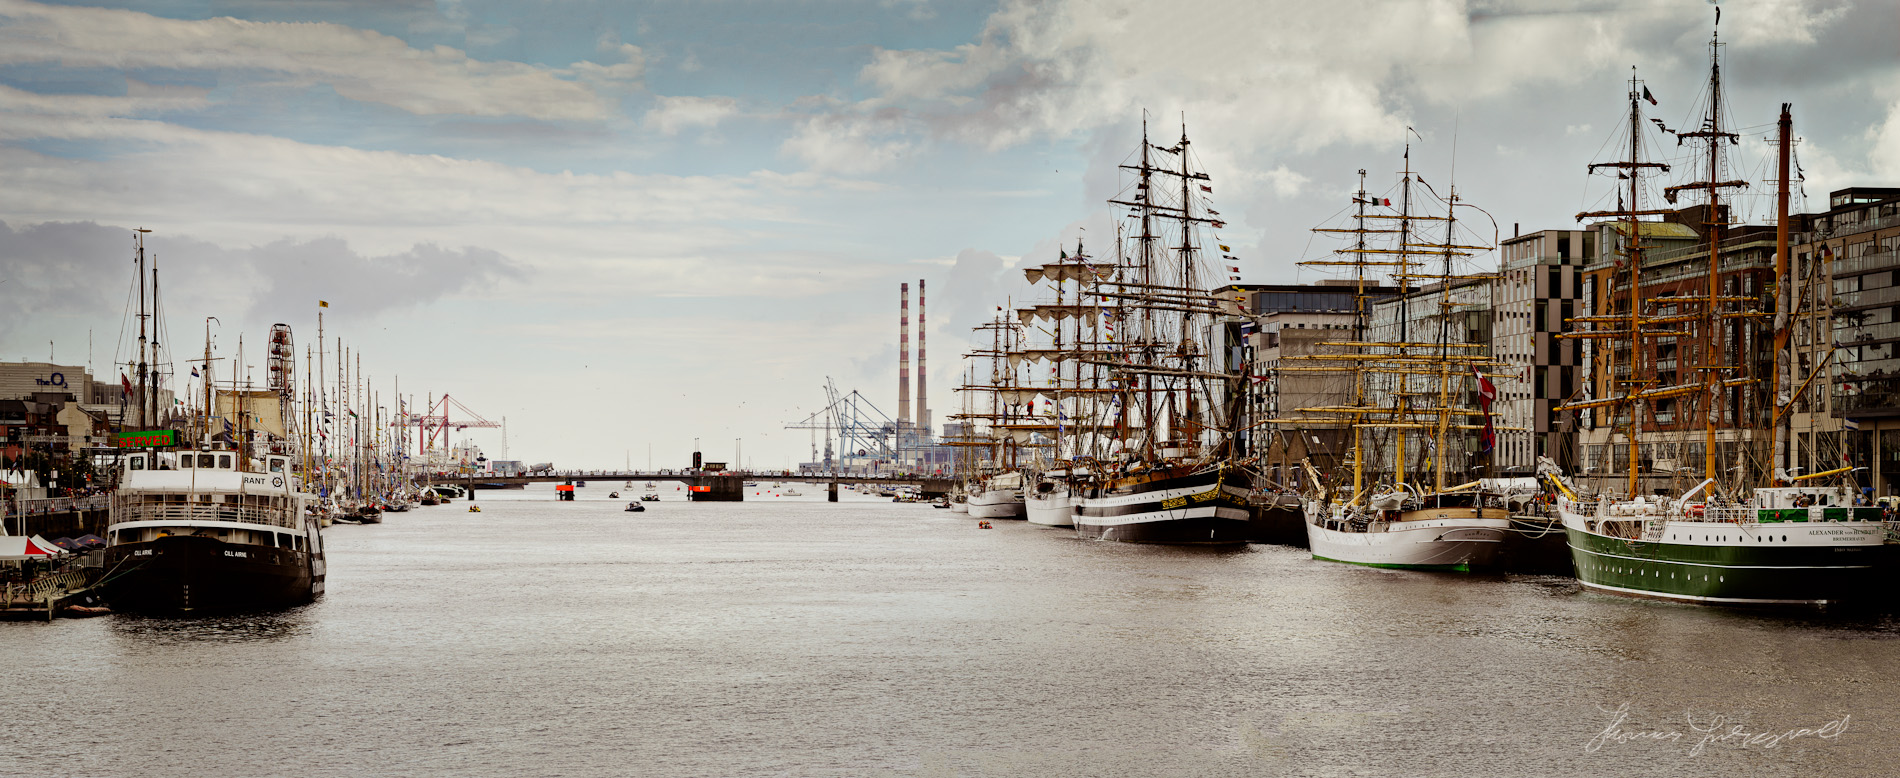 A Panorama of Dublin Harbour with ships taking Part in the Tall Ships festival berthed on the Side